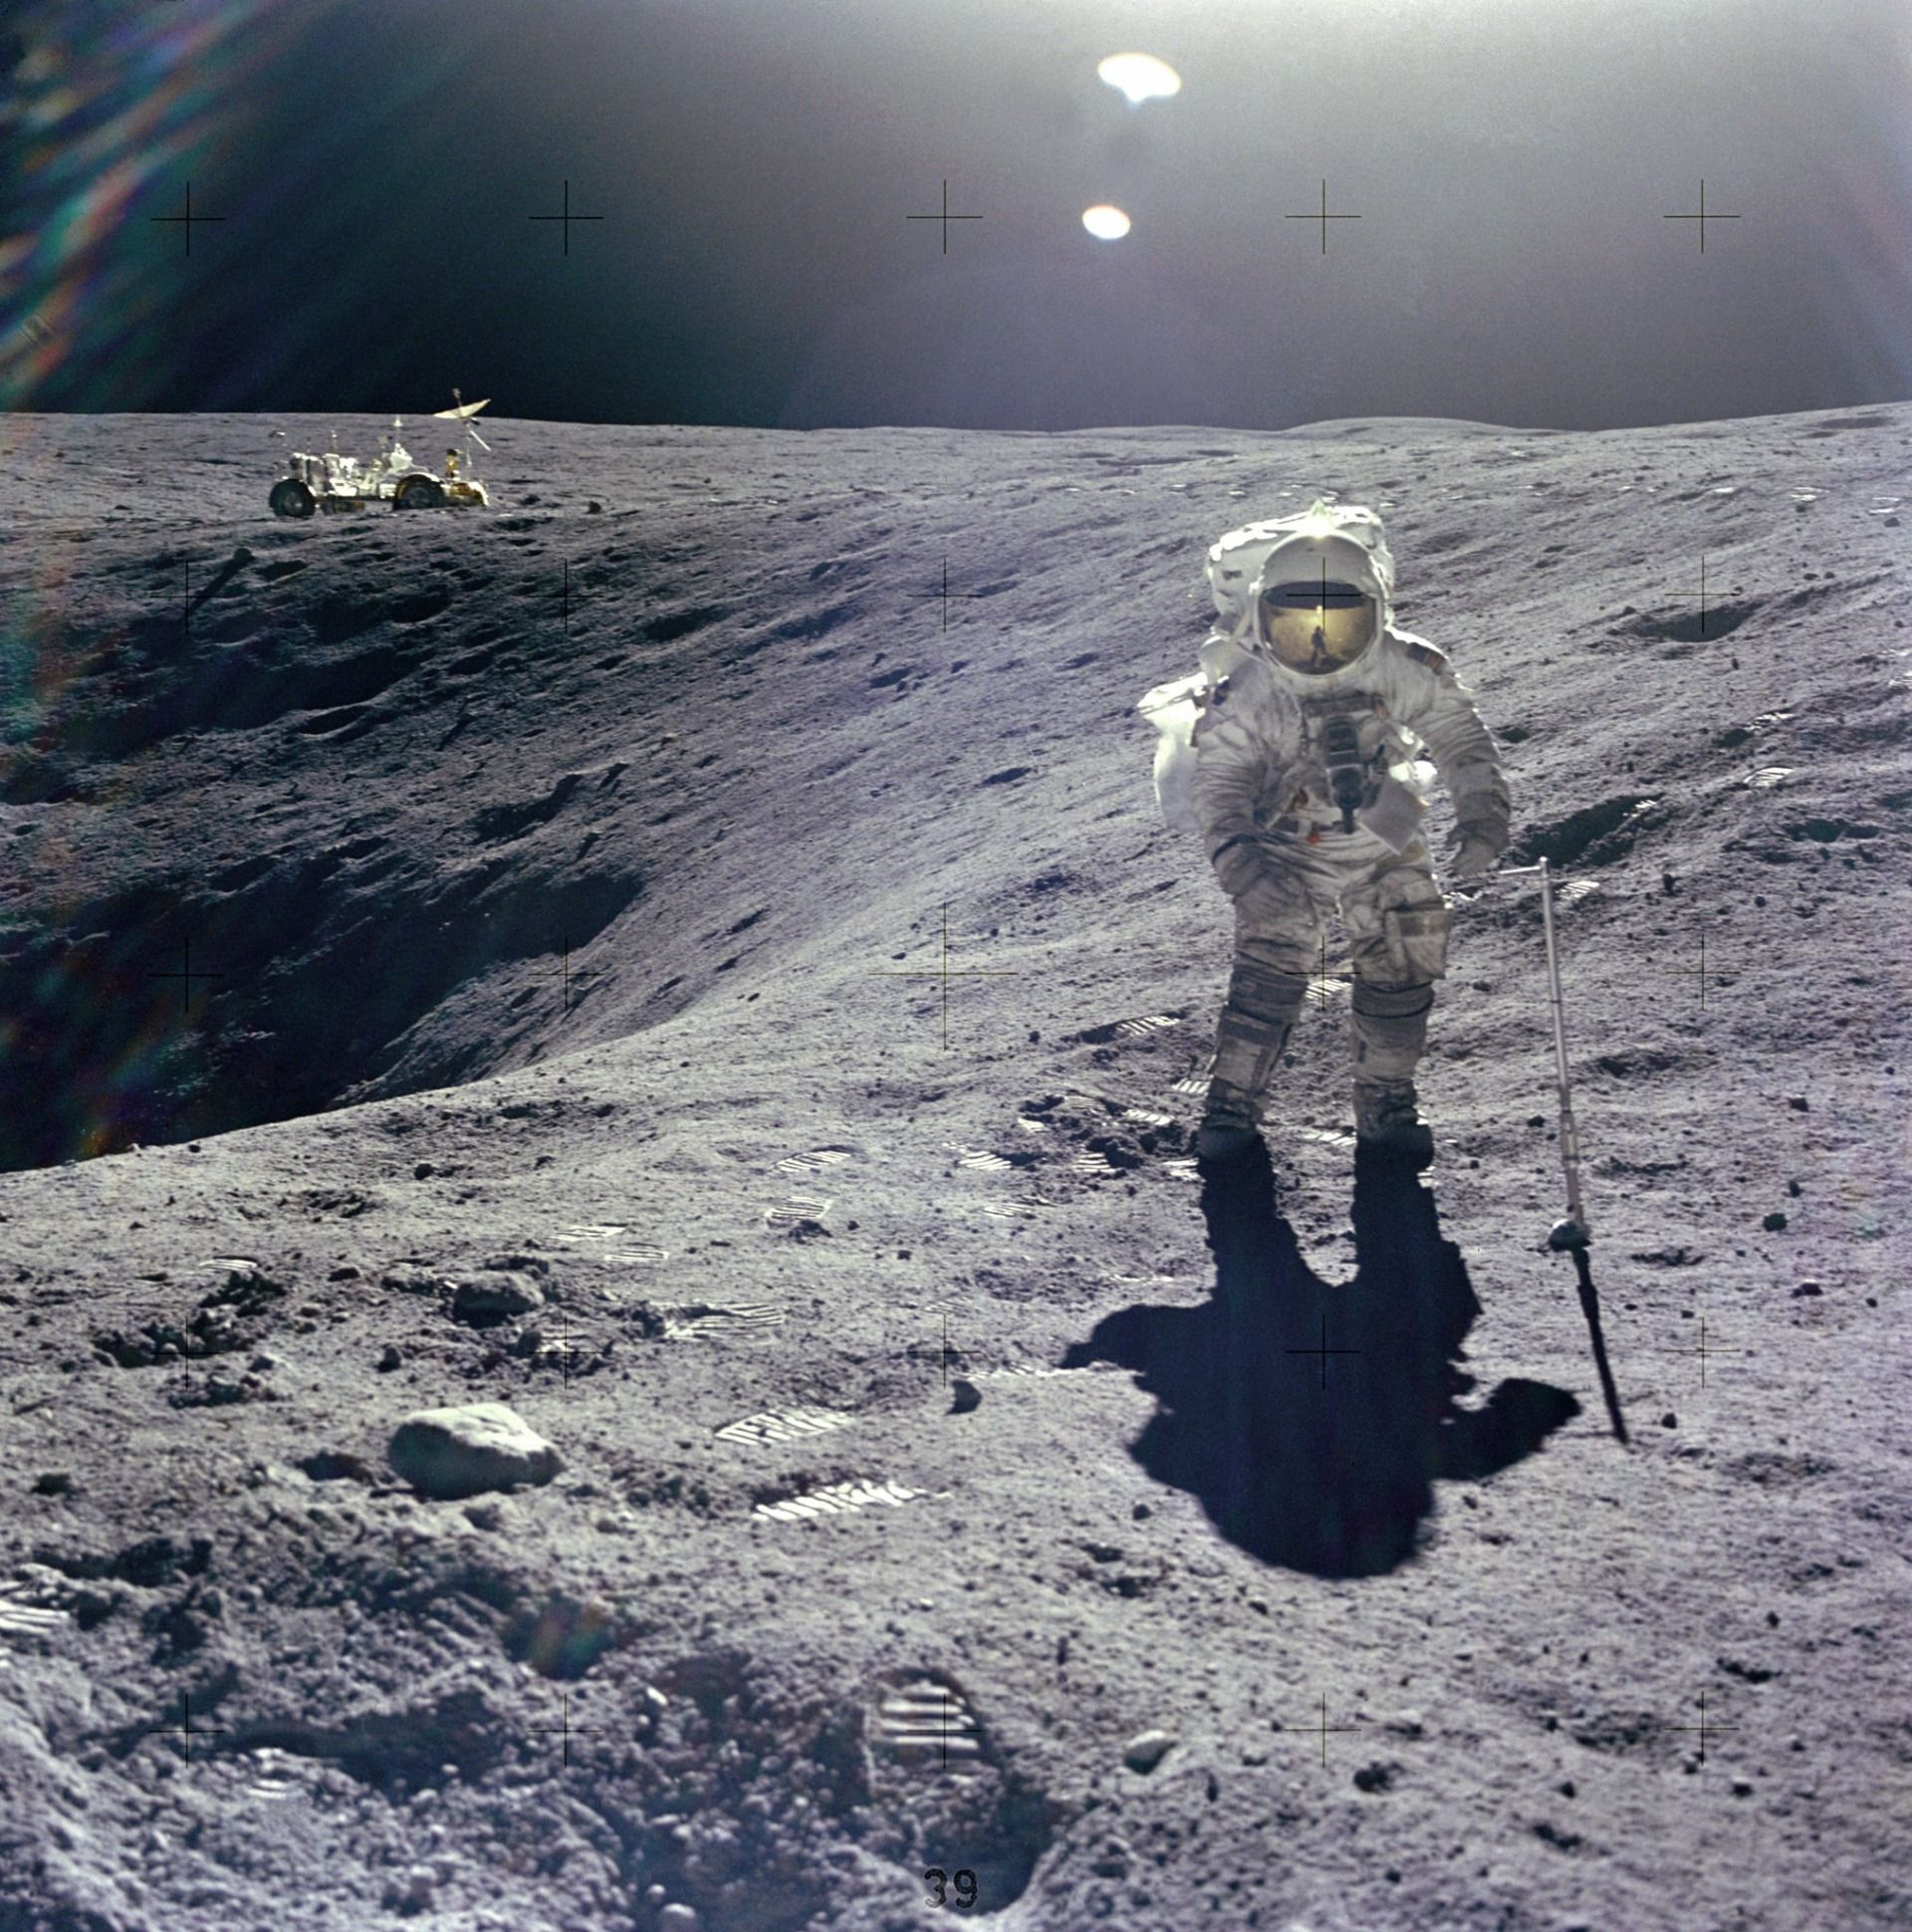 Astronaut Duke on the lunar surface at the edge of a crater